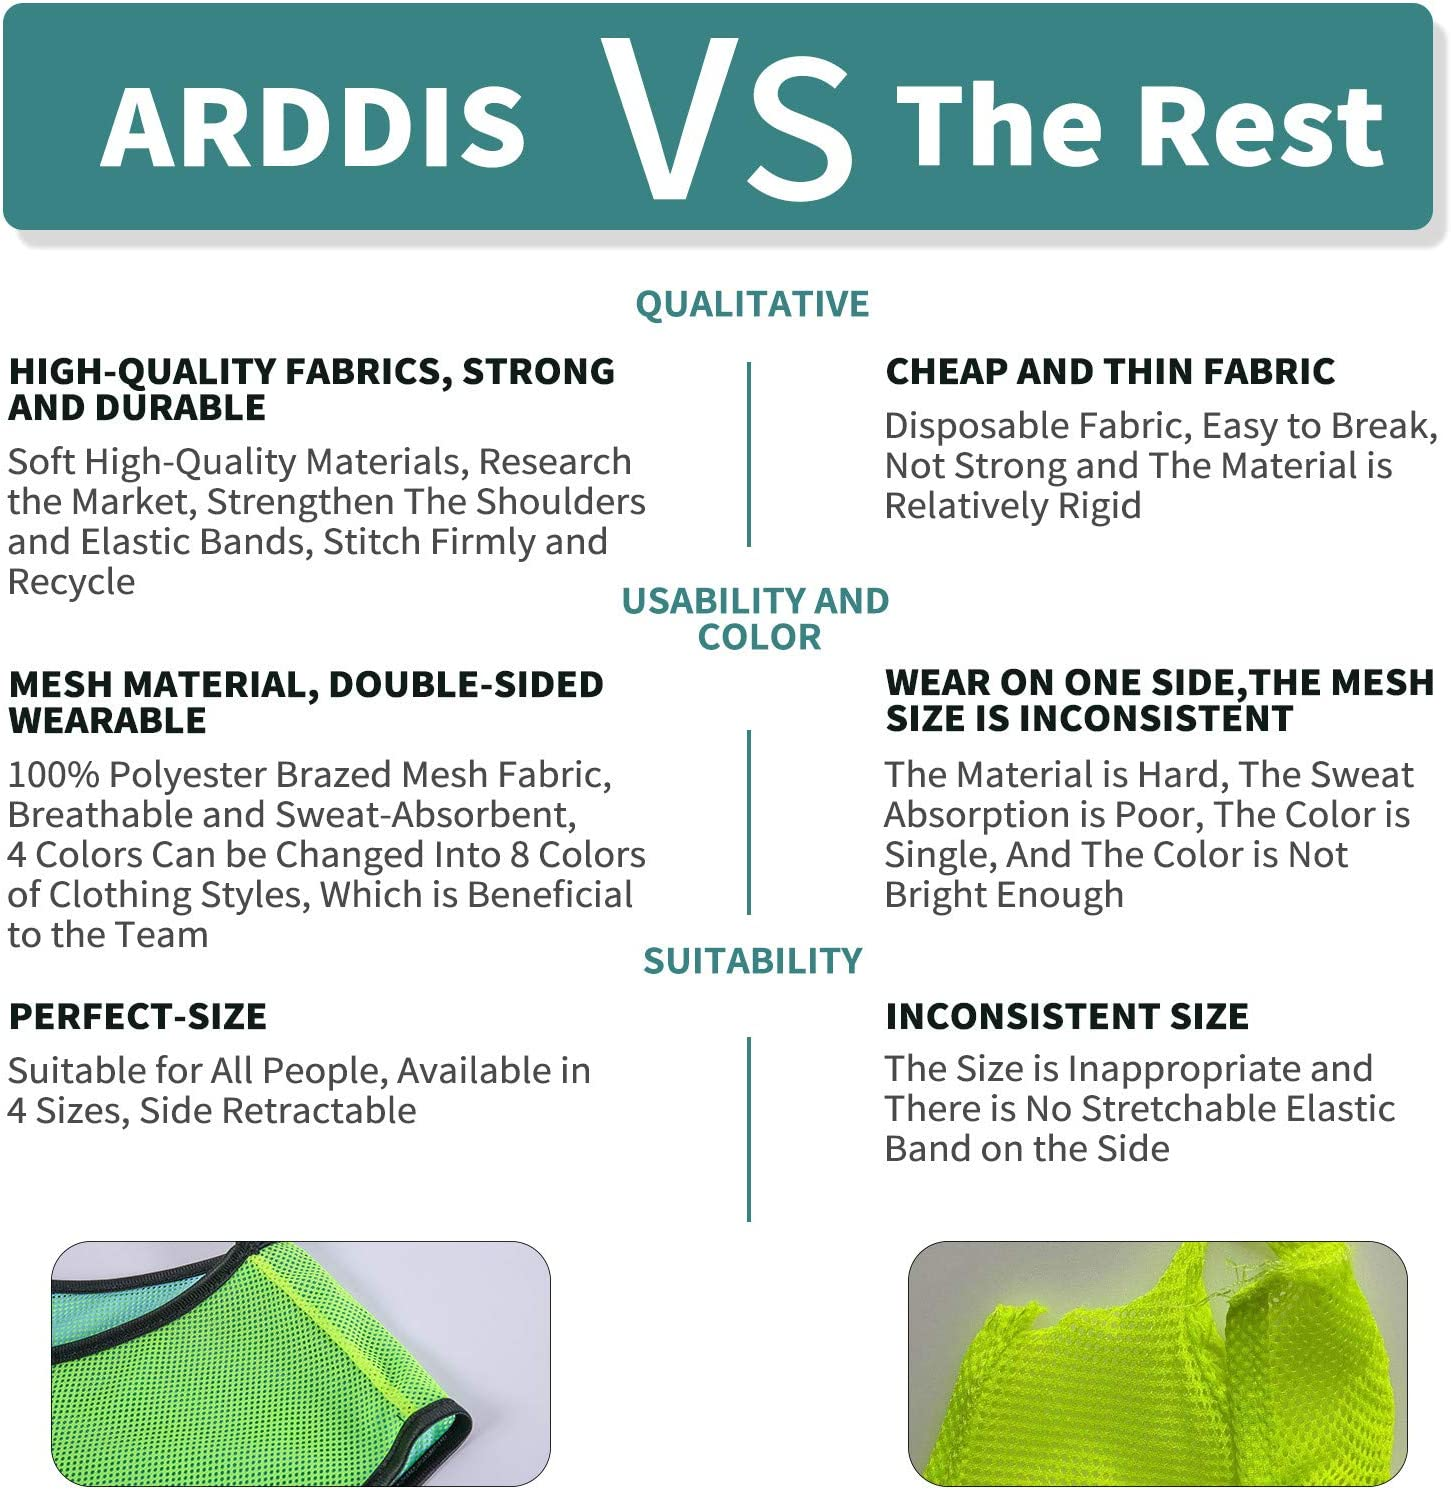 ARDDIS 6 Pack Pinnies Double Sided Mesh Scrimmage Practice Reversible Pinnies Breathable Hockey Practice Soccer Vest Jersey with Drawstring Bag for Kids and Adult Outdoor Sports : Sports & Outdoors